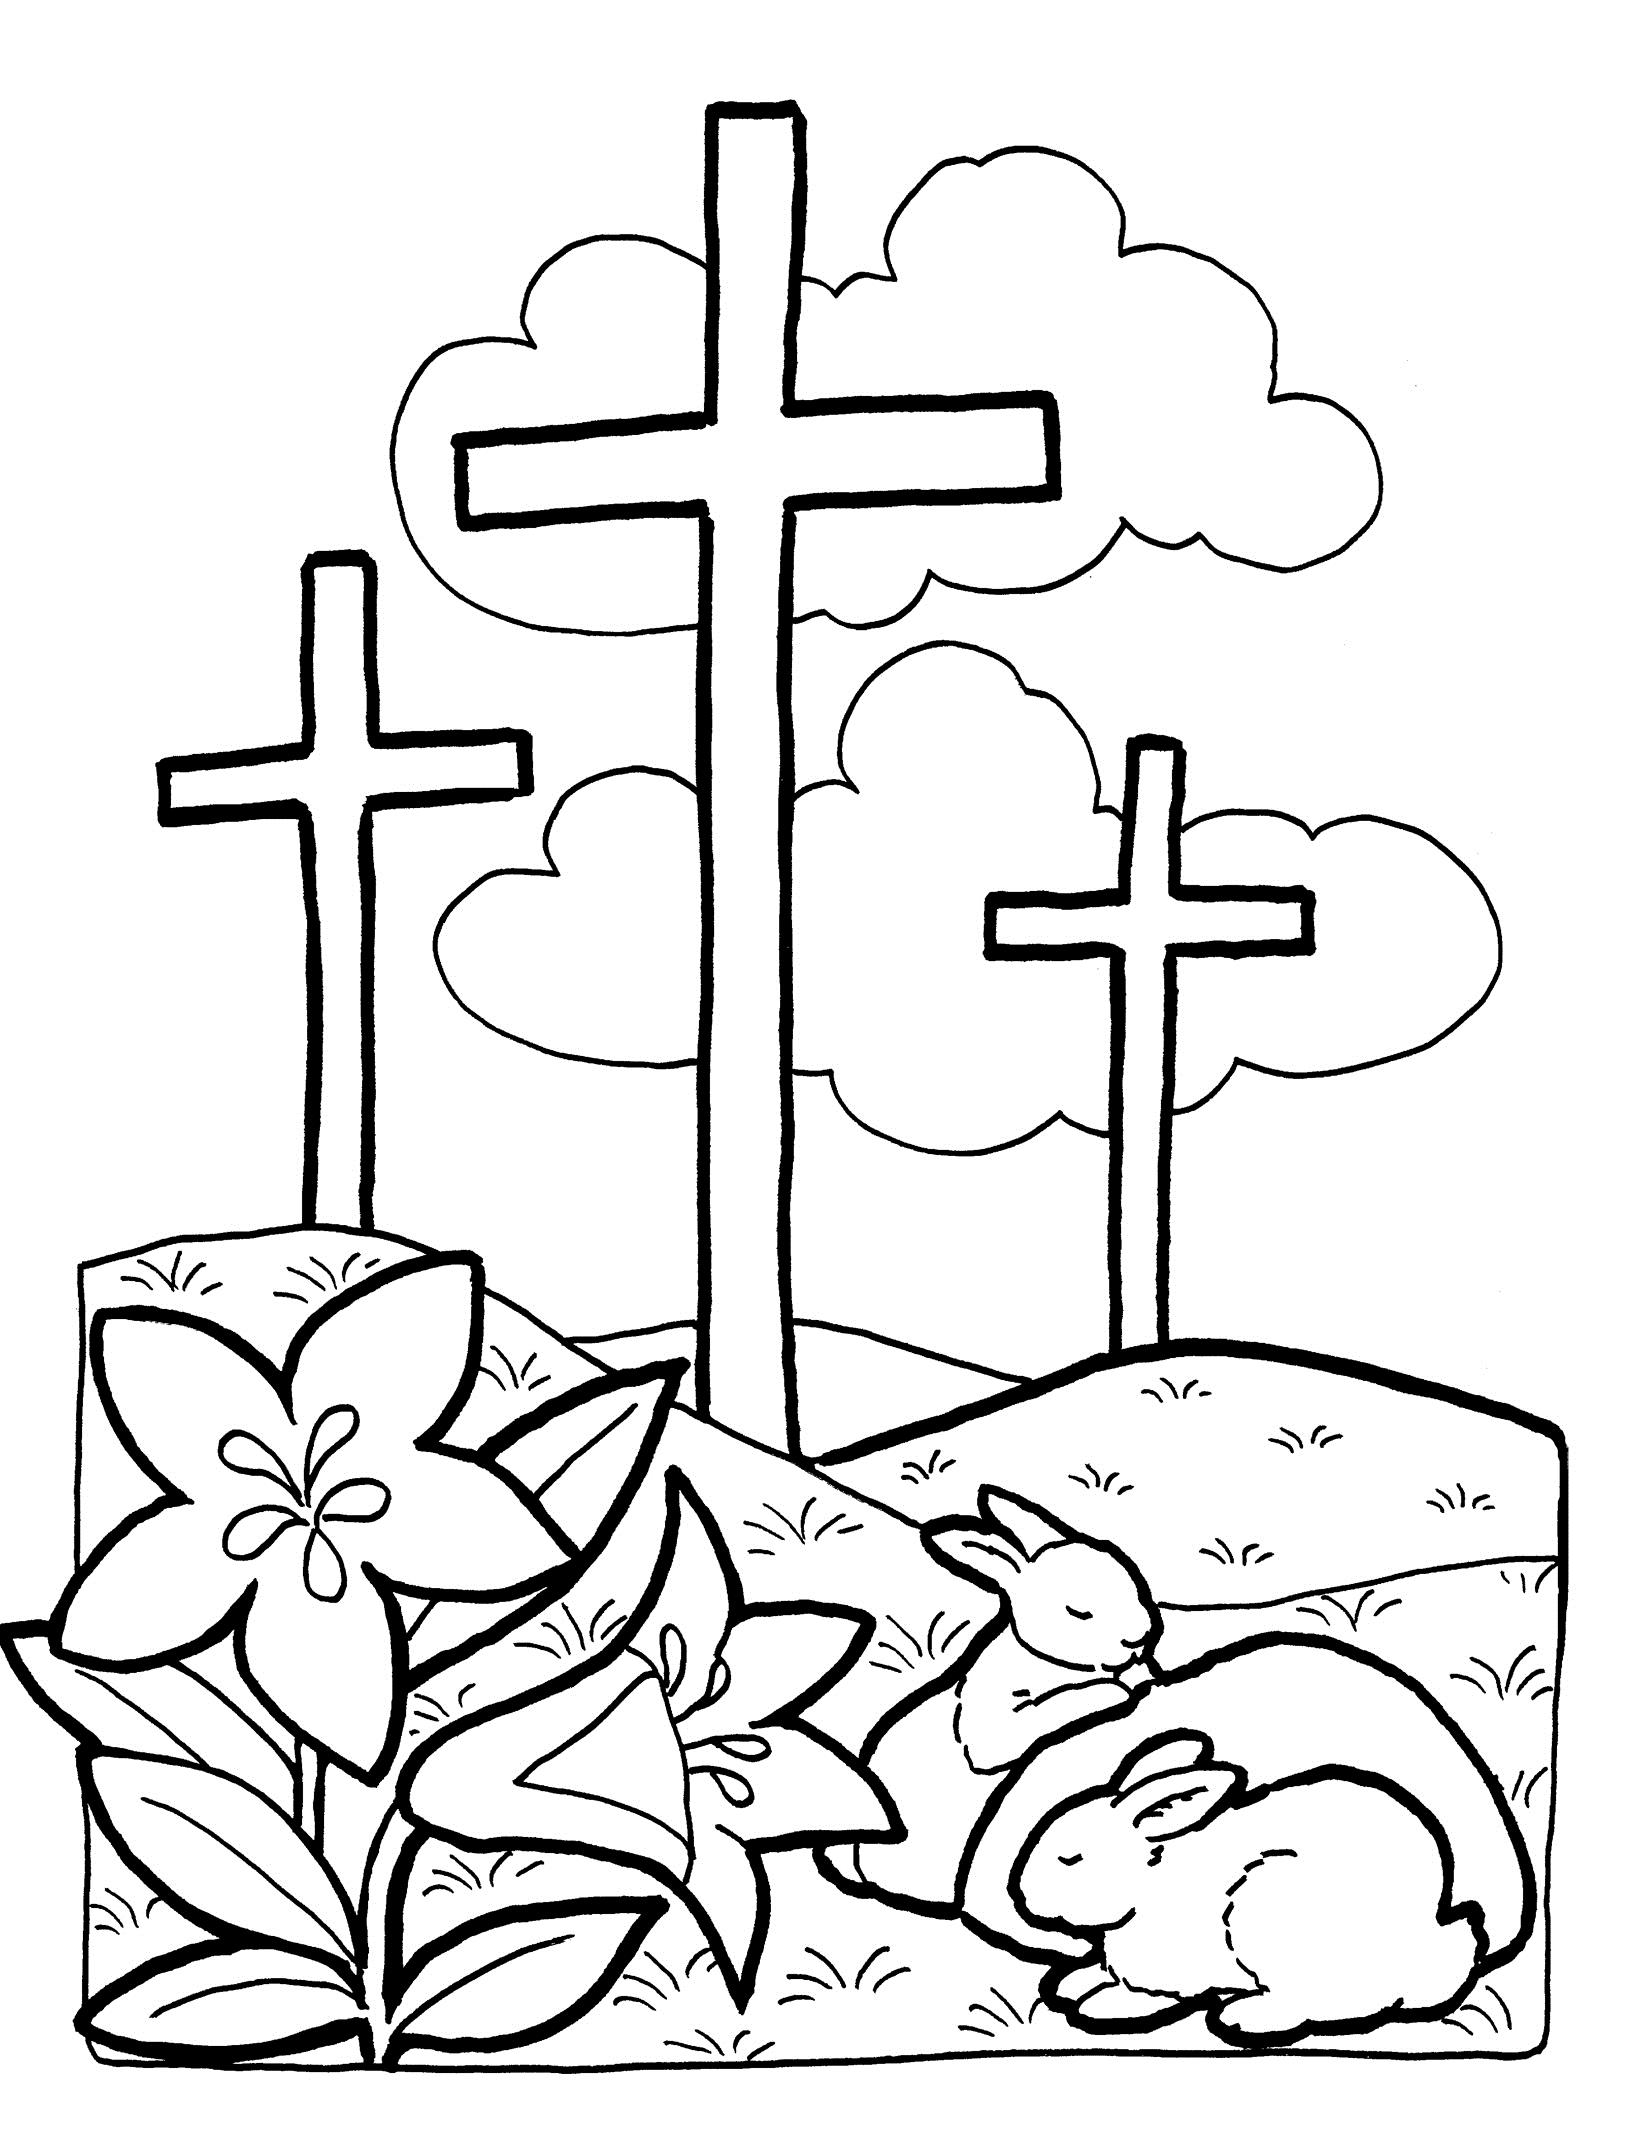 1650x2145 Religious Easter Drawings Hd Easter Images